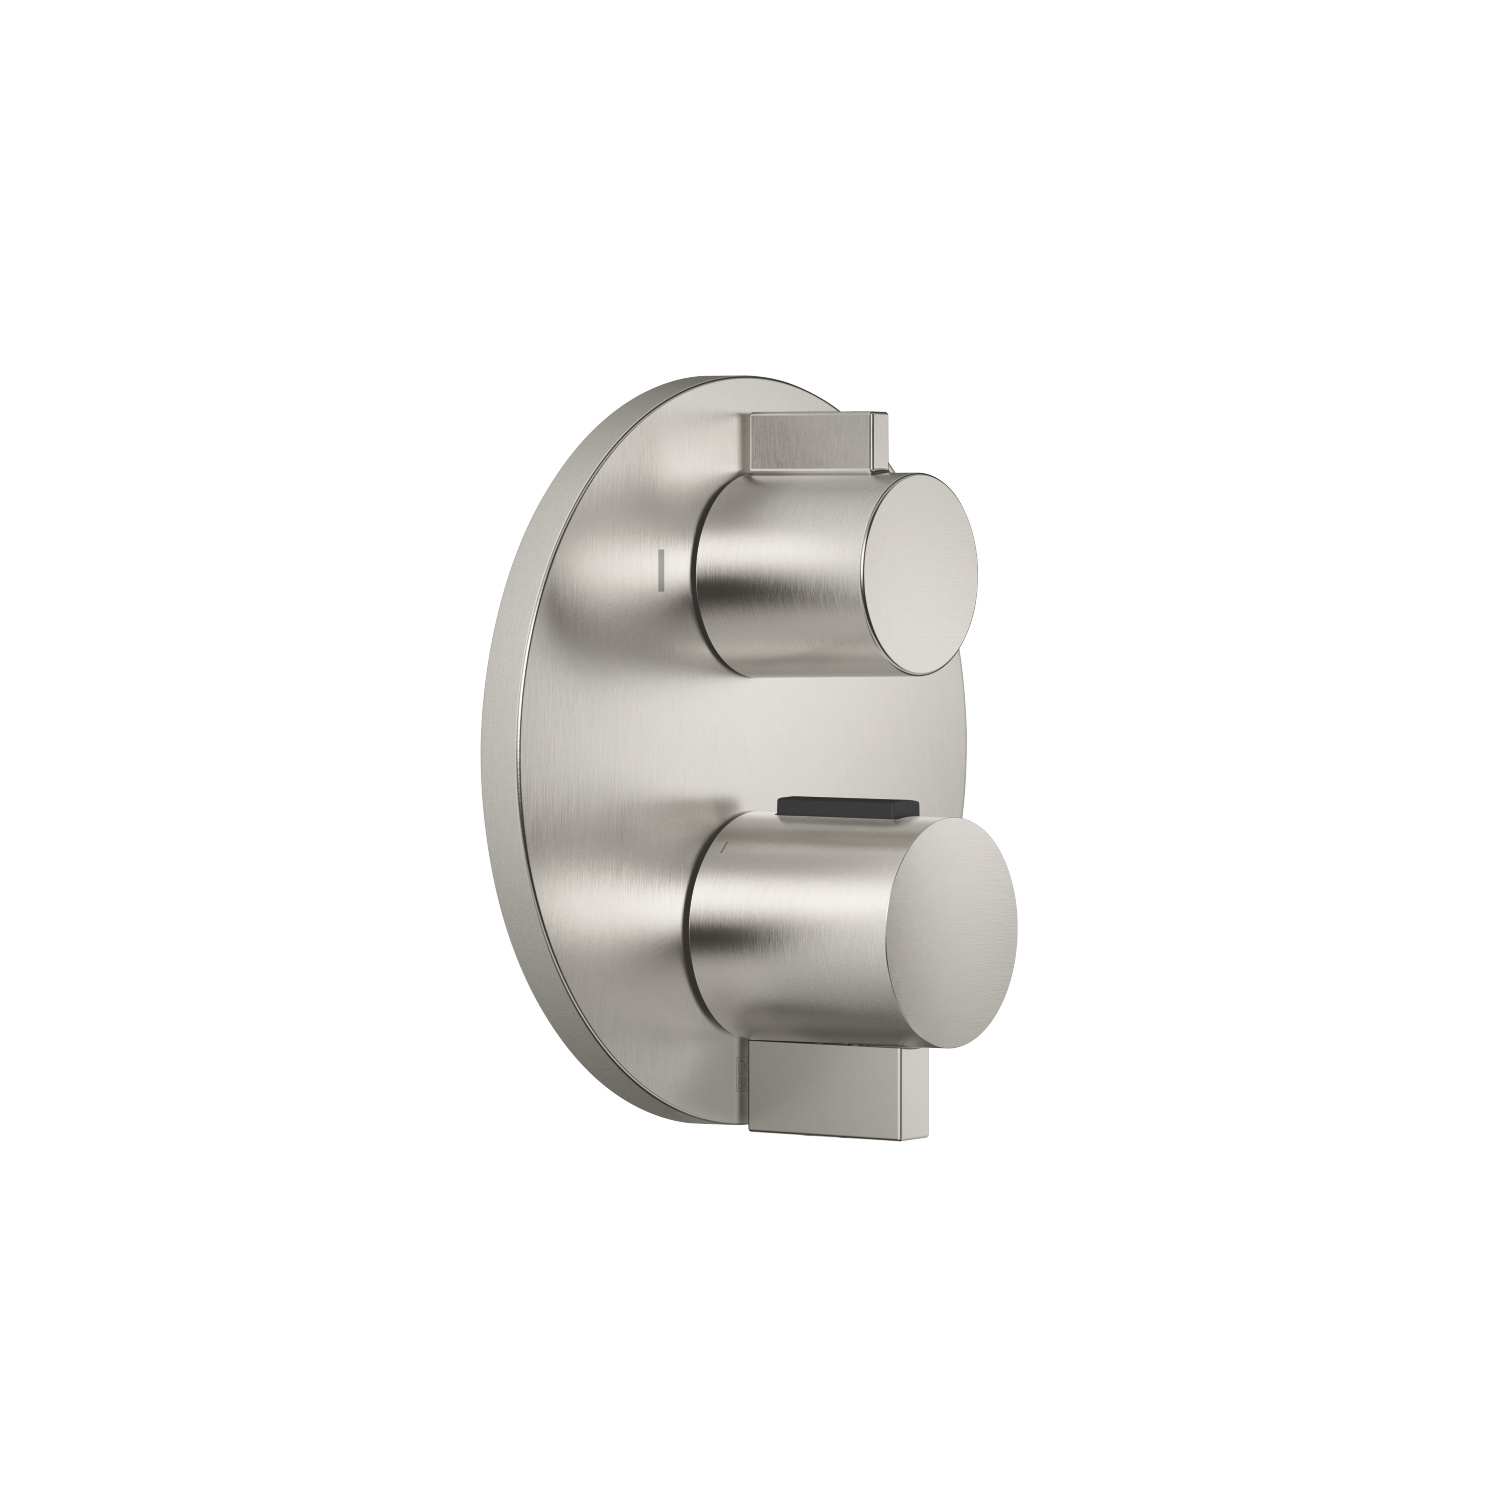 Concealed thermostat with two-way volume control - platinum matte